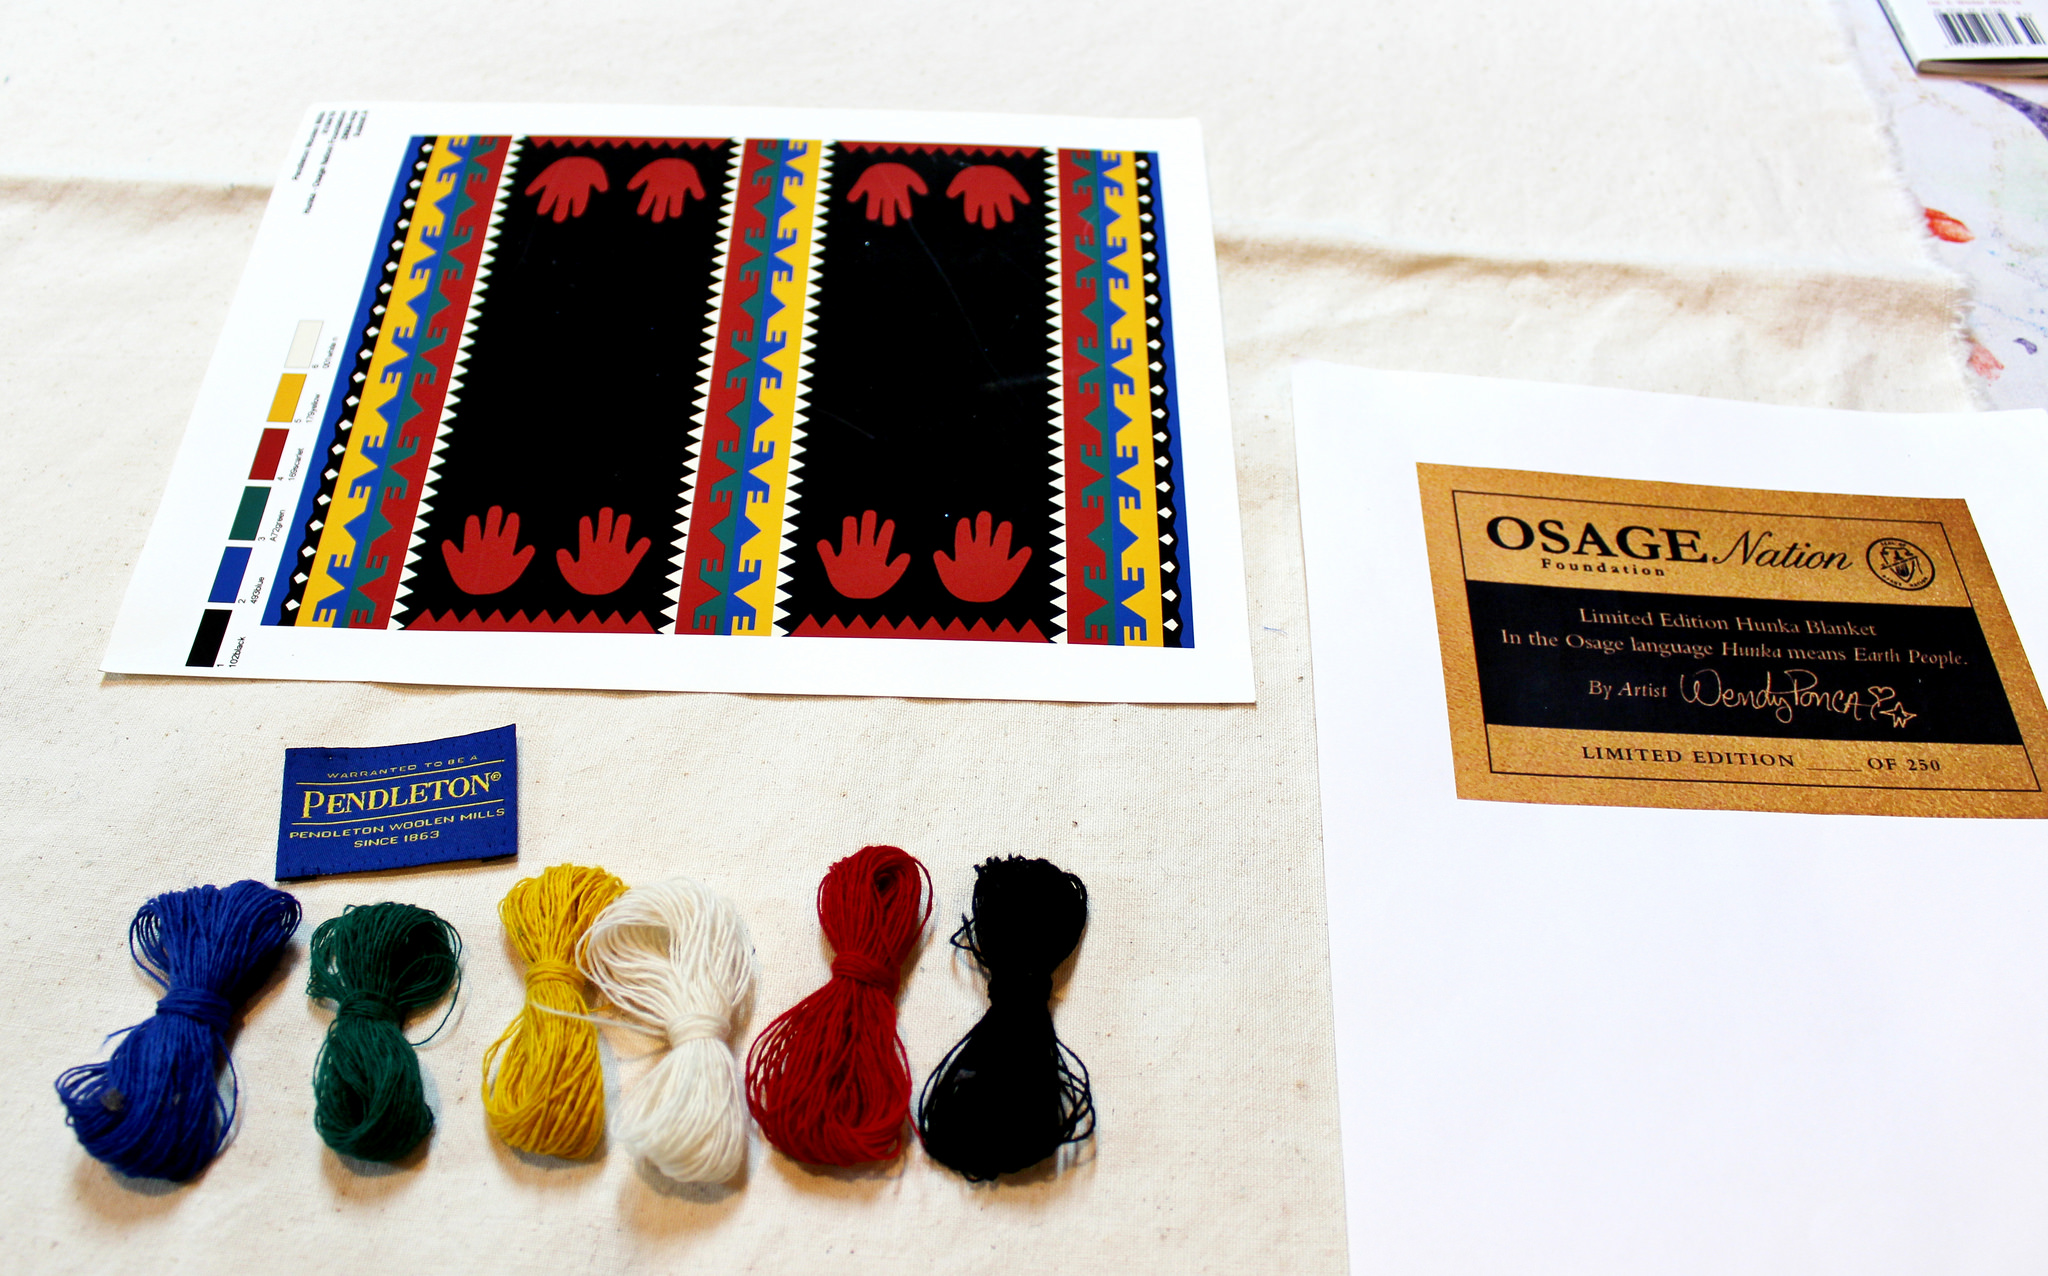 Wendy Ponca designs Pendleton blanket for the Osage Foundation